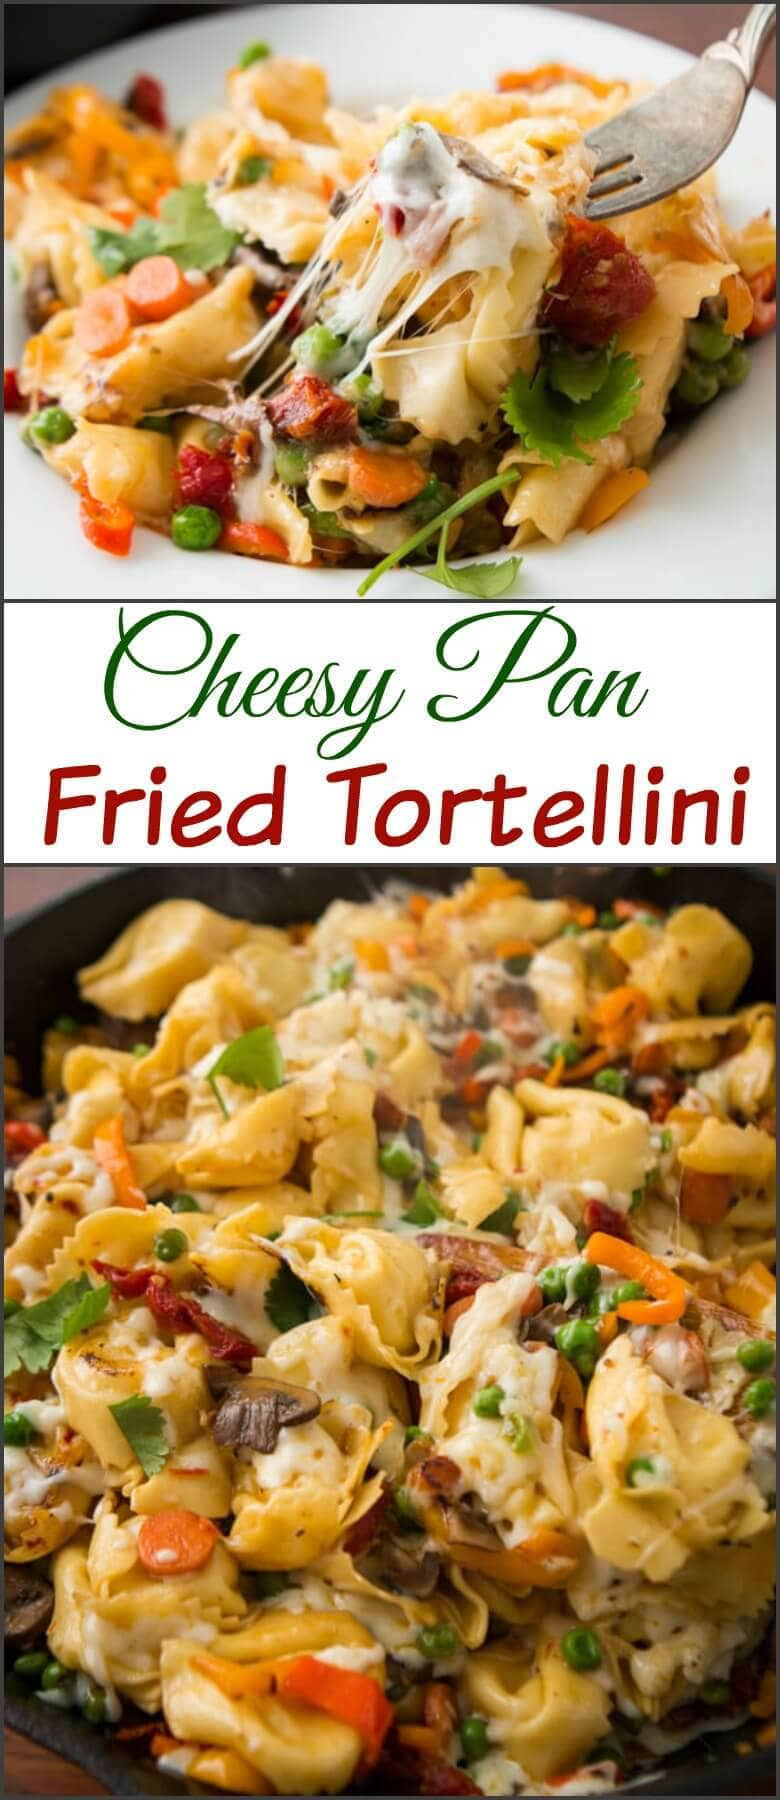 This is one of our favorite dinners, cheesy pan fried tortellini. My husband made up the recipe and it looks almost too simple, but it's delicious!